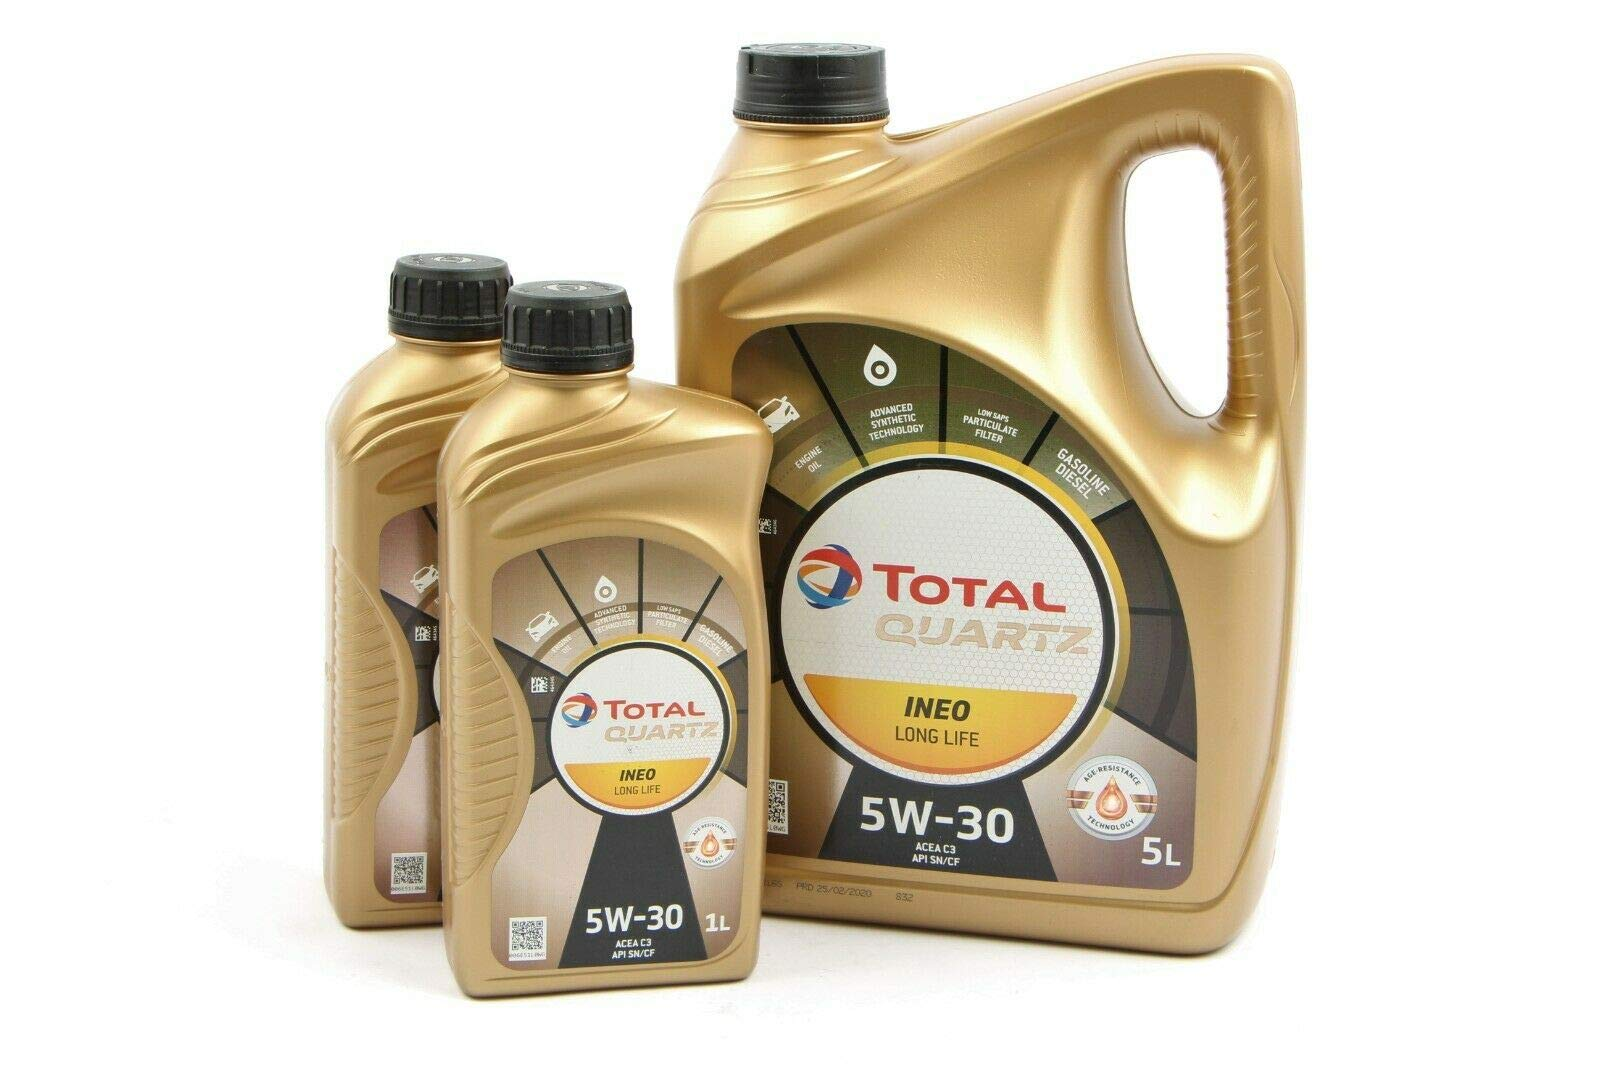 7 LITER MOTORÖL TOTAL QUARTZ INEO LONG LIFE 5W-30 von TOTAL_bundle